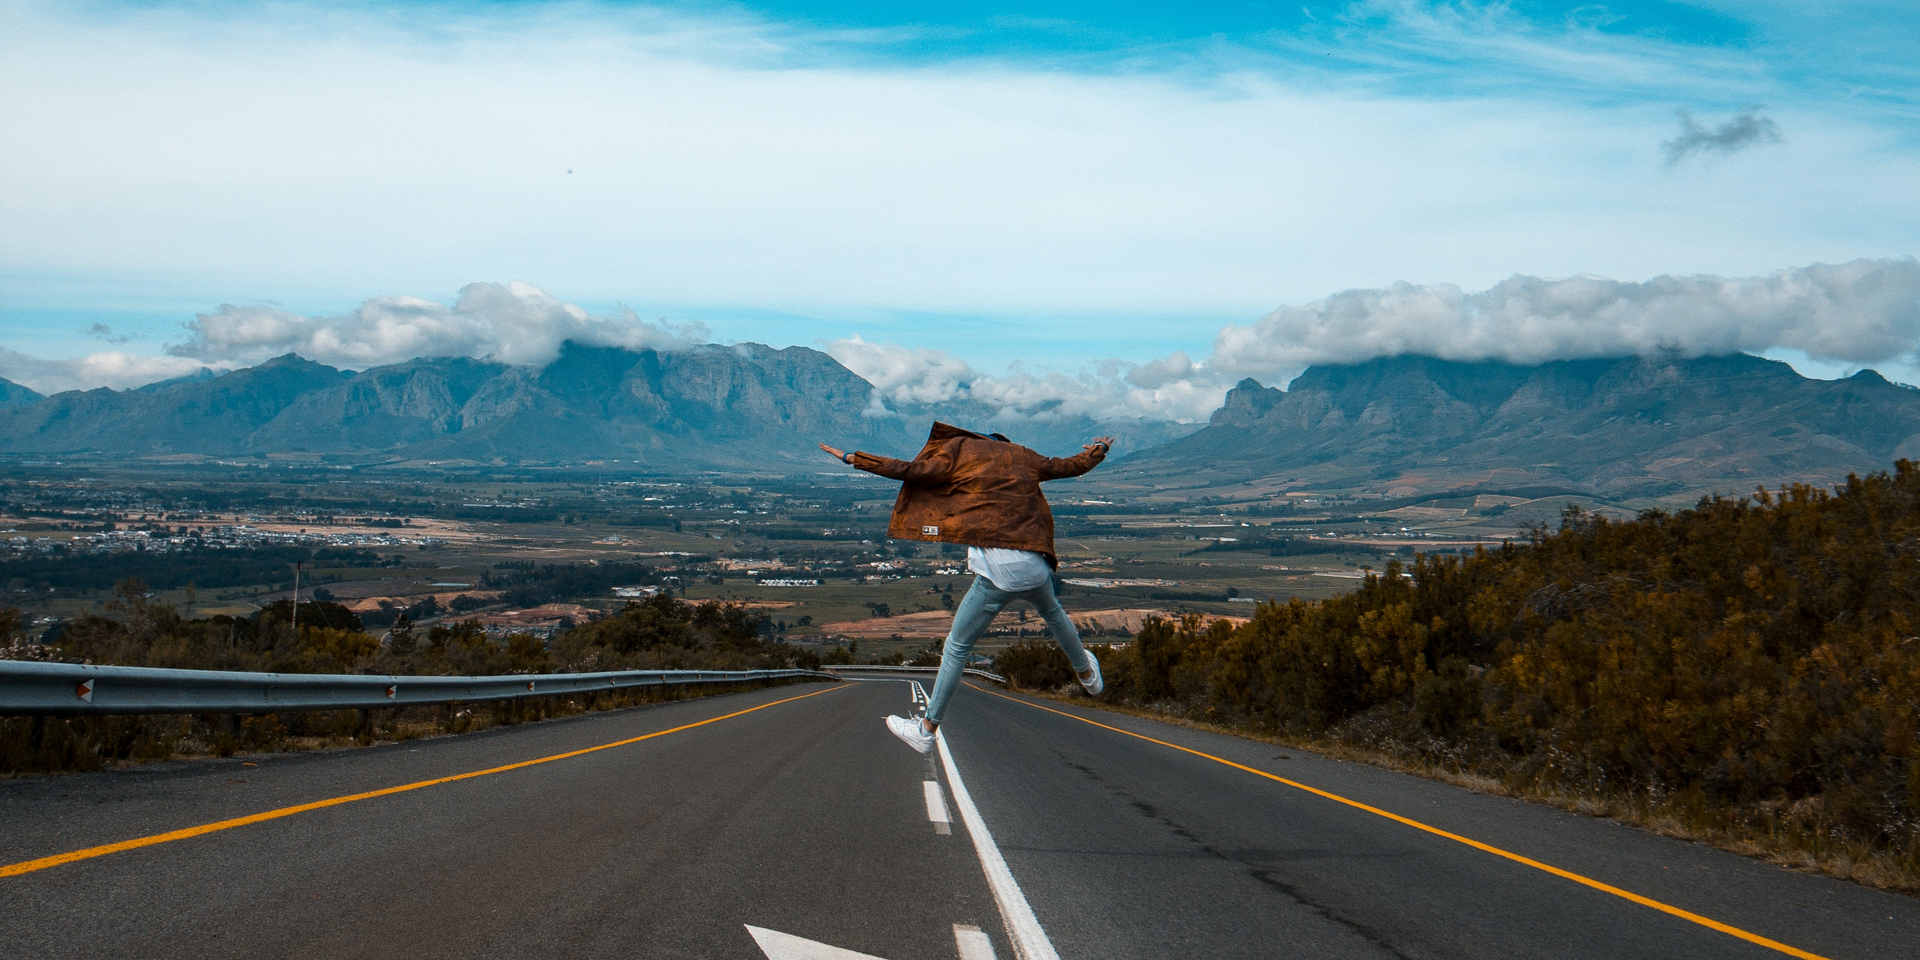 person-jumps-on-road-2886002.jpg